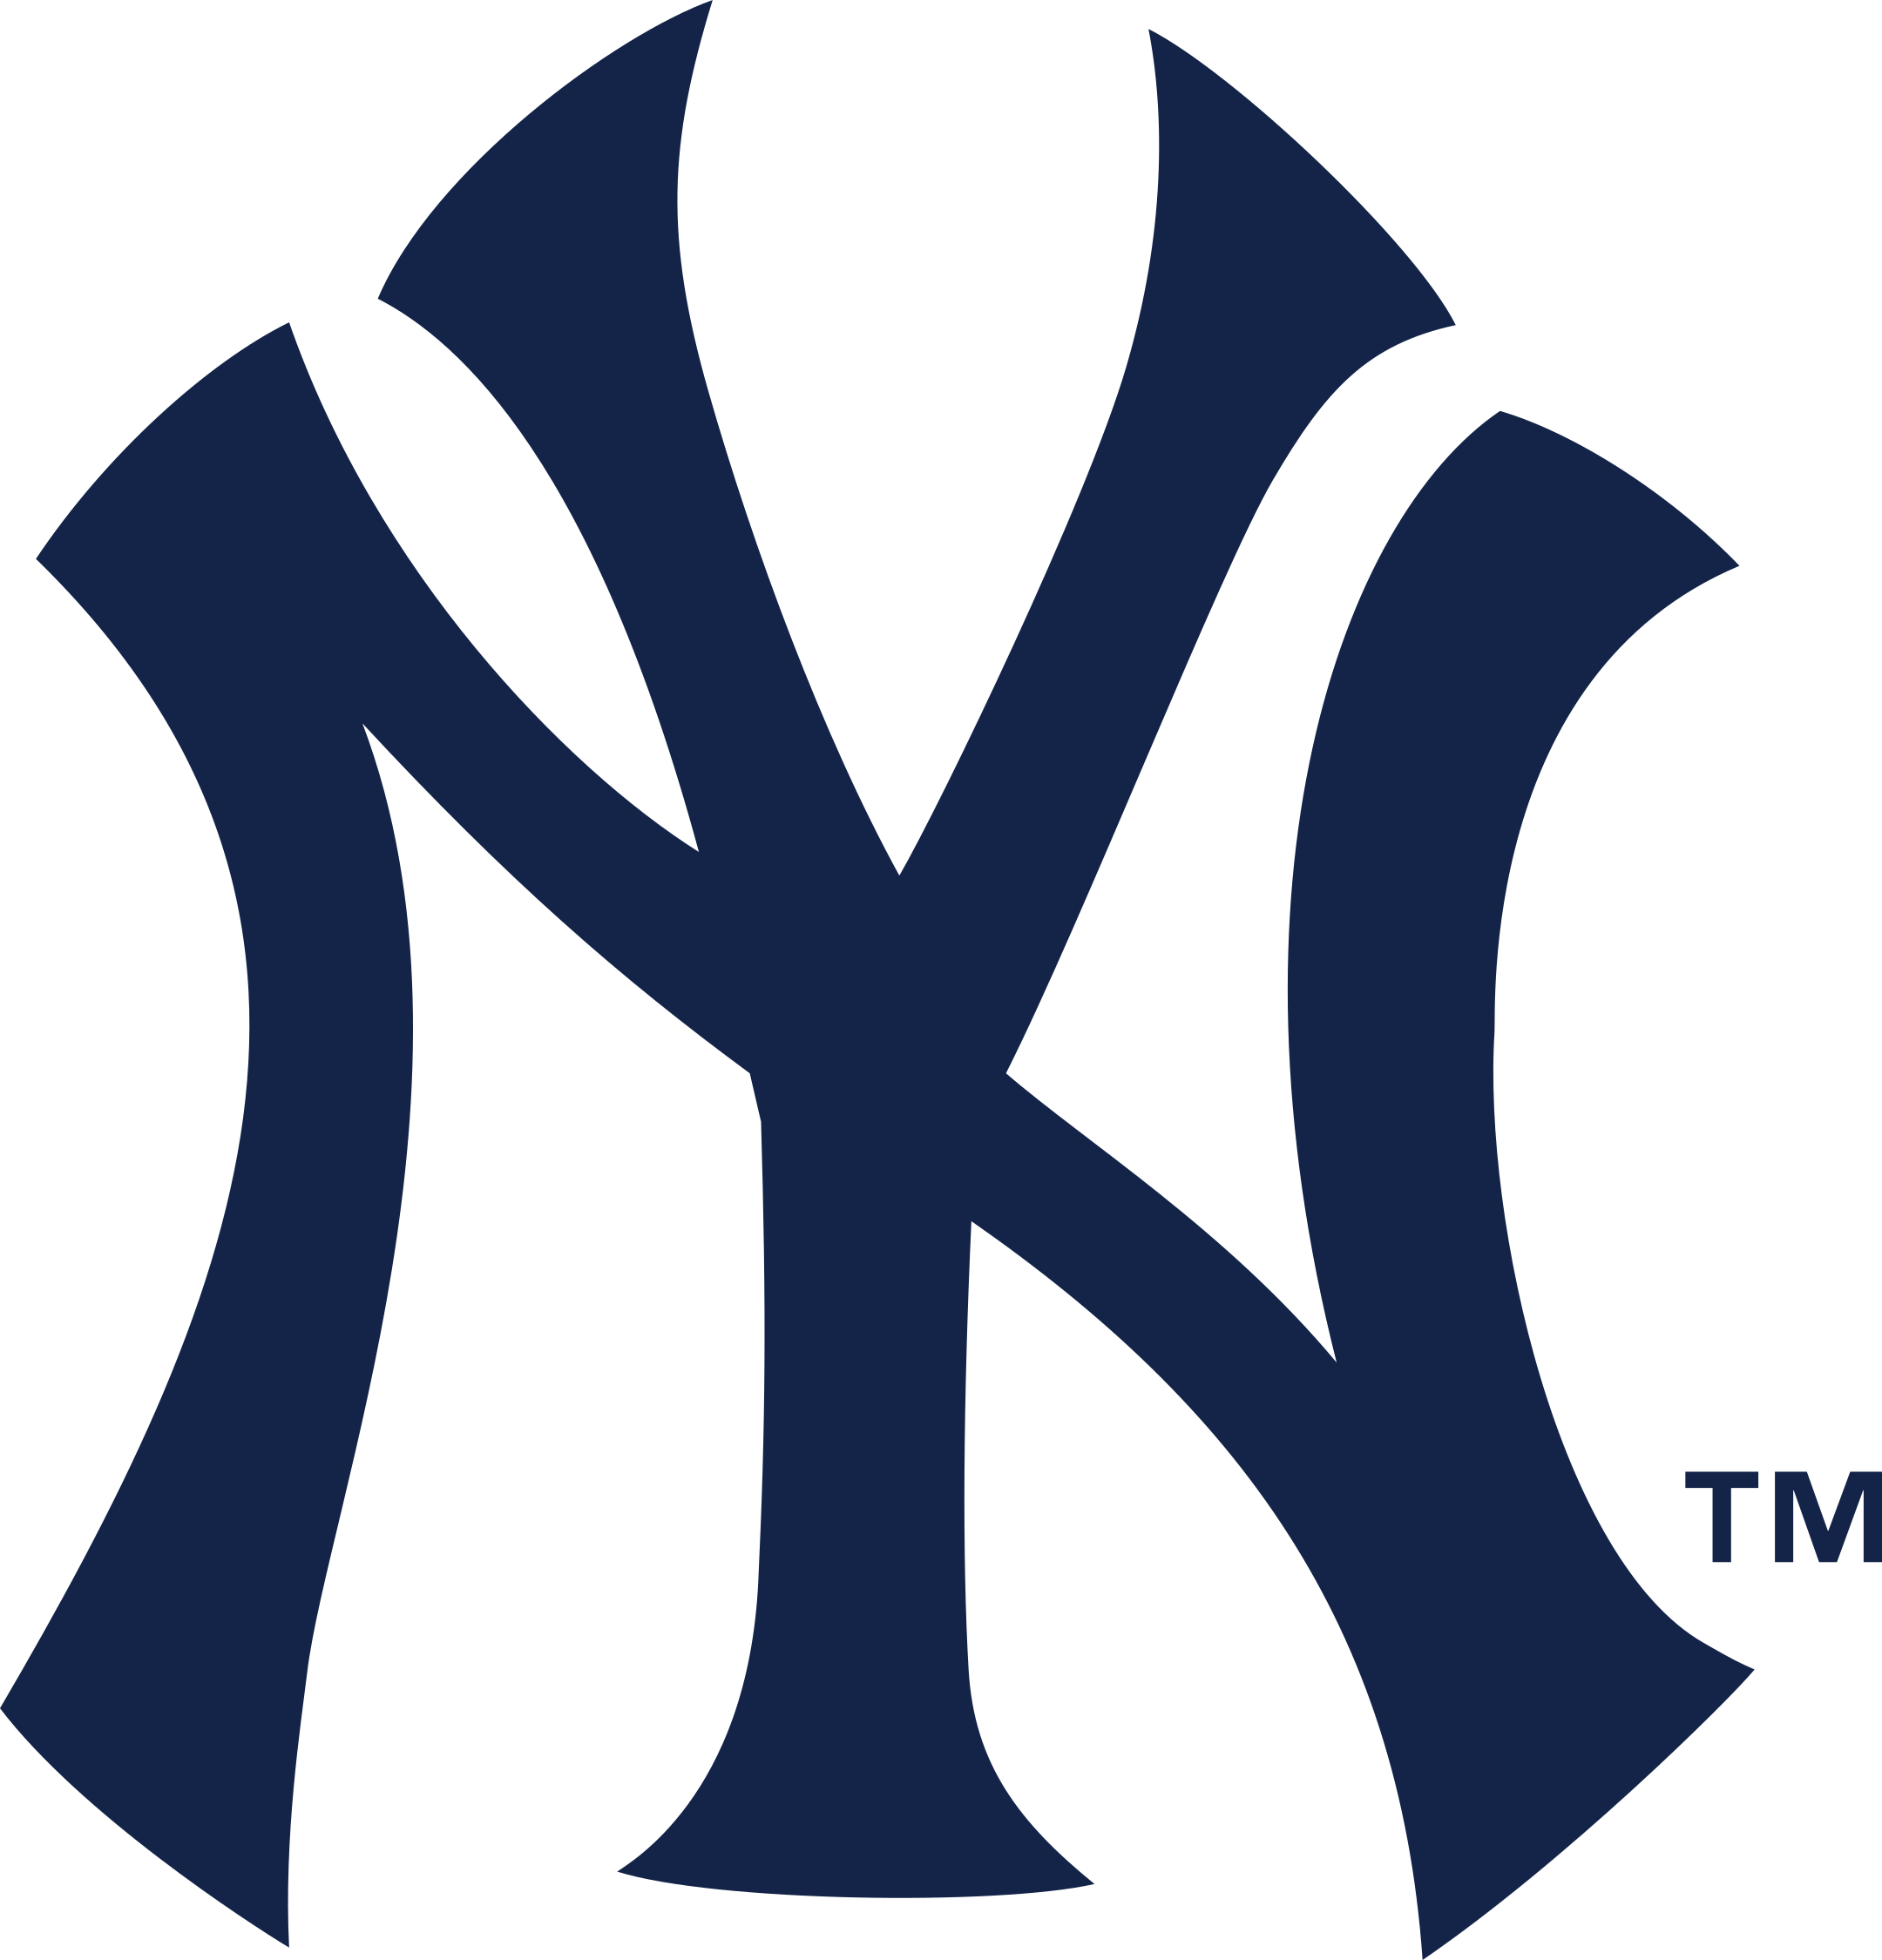 new york yankees logo 1 - New York Yankees Logo